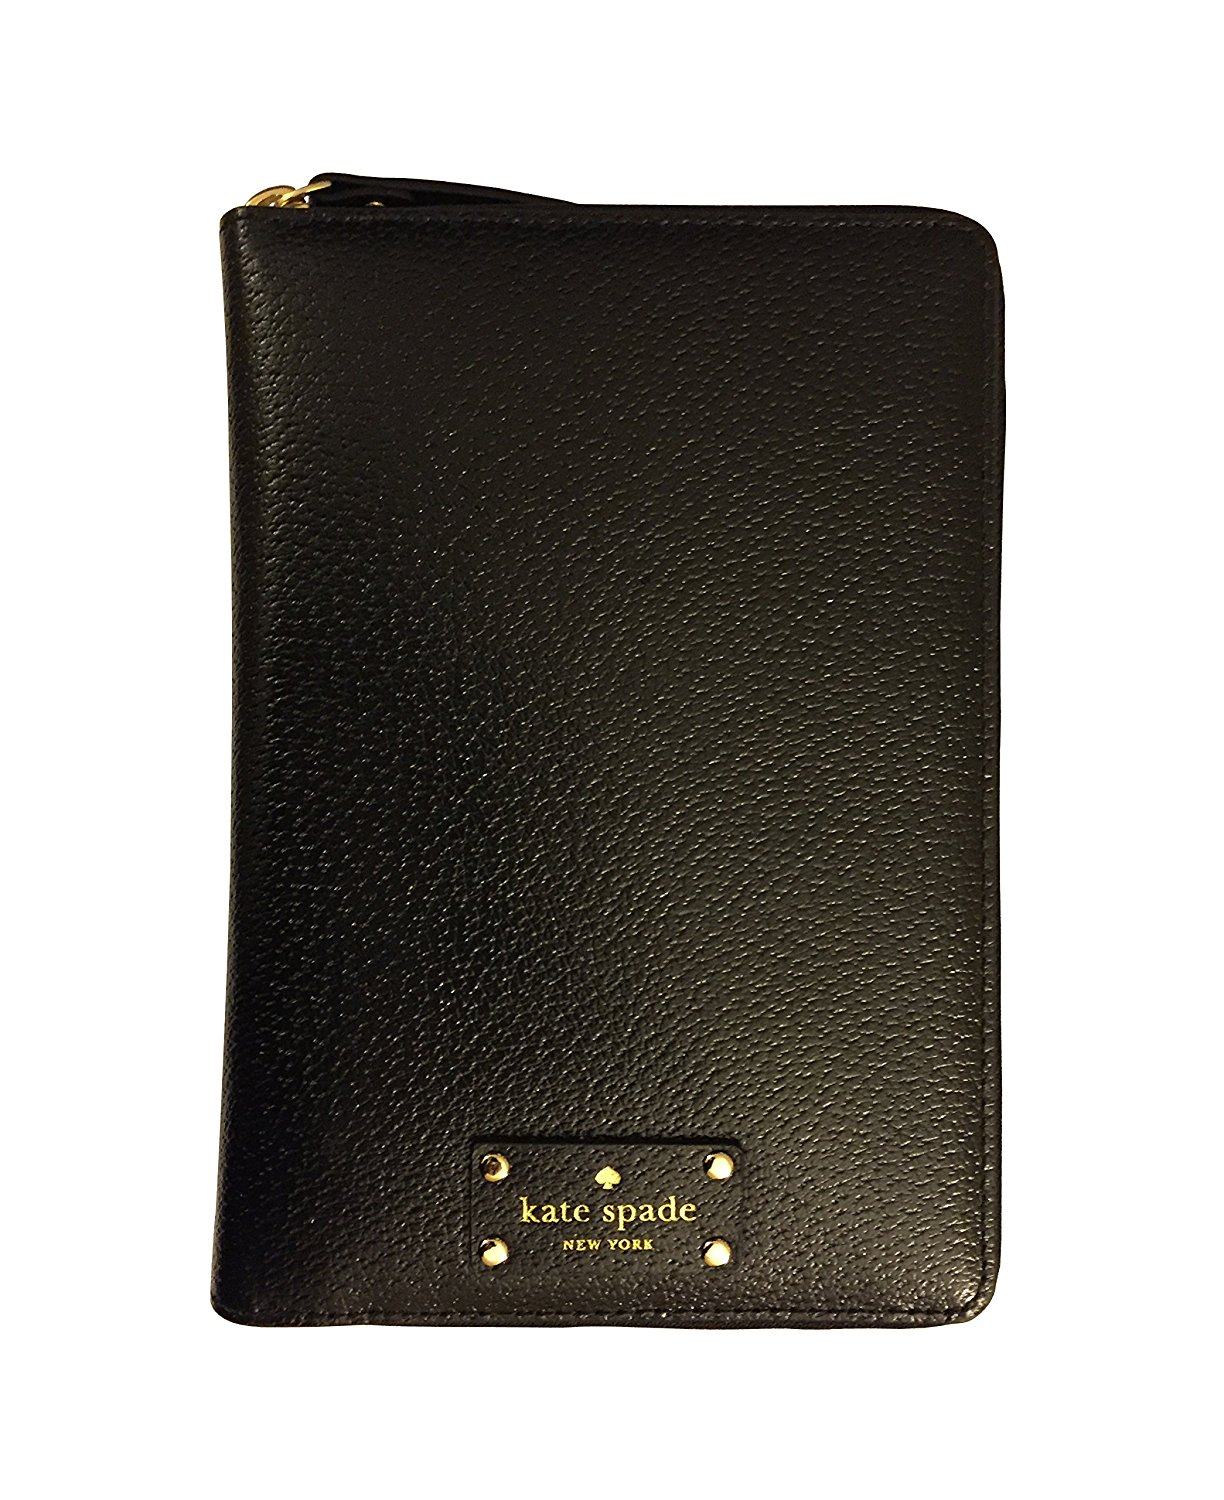 Organizer 2016 Buy Kate Spade New York Wellesley 2016 Leather Zip Around Personal